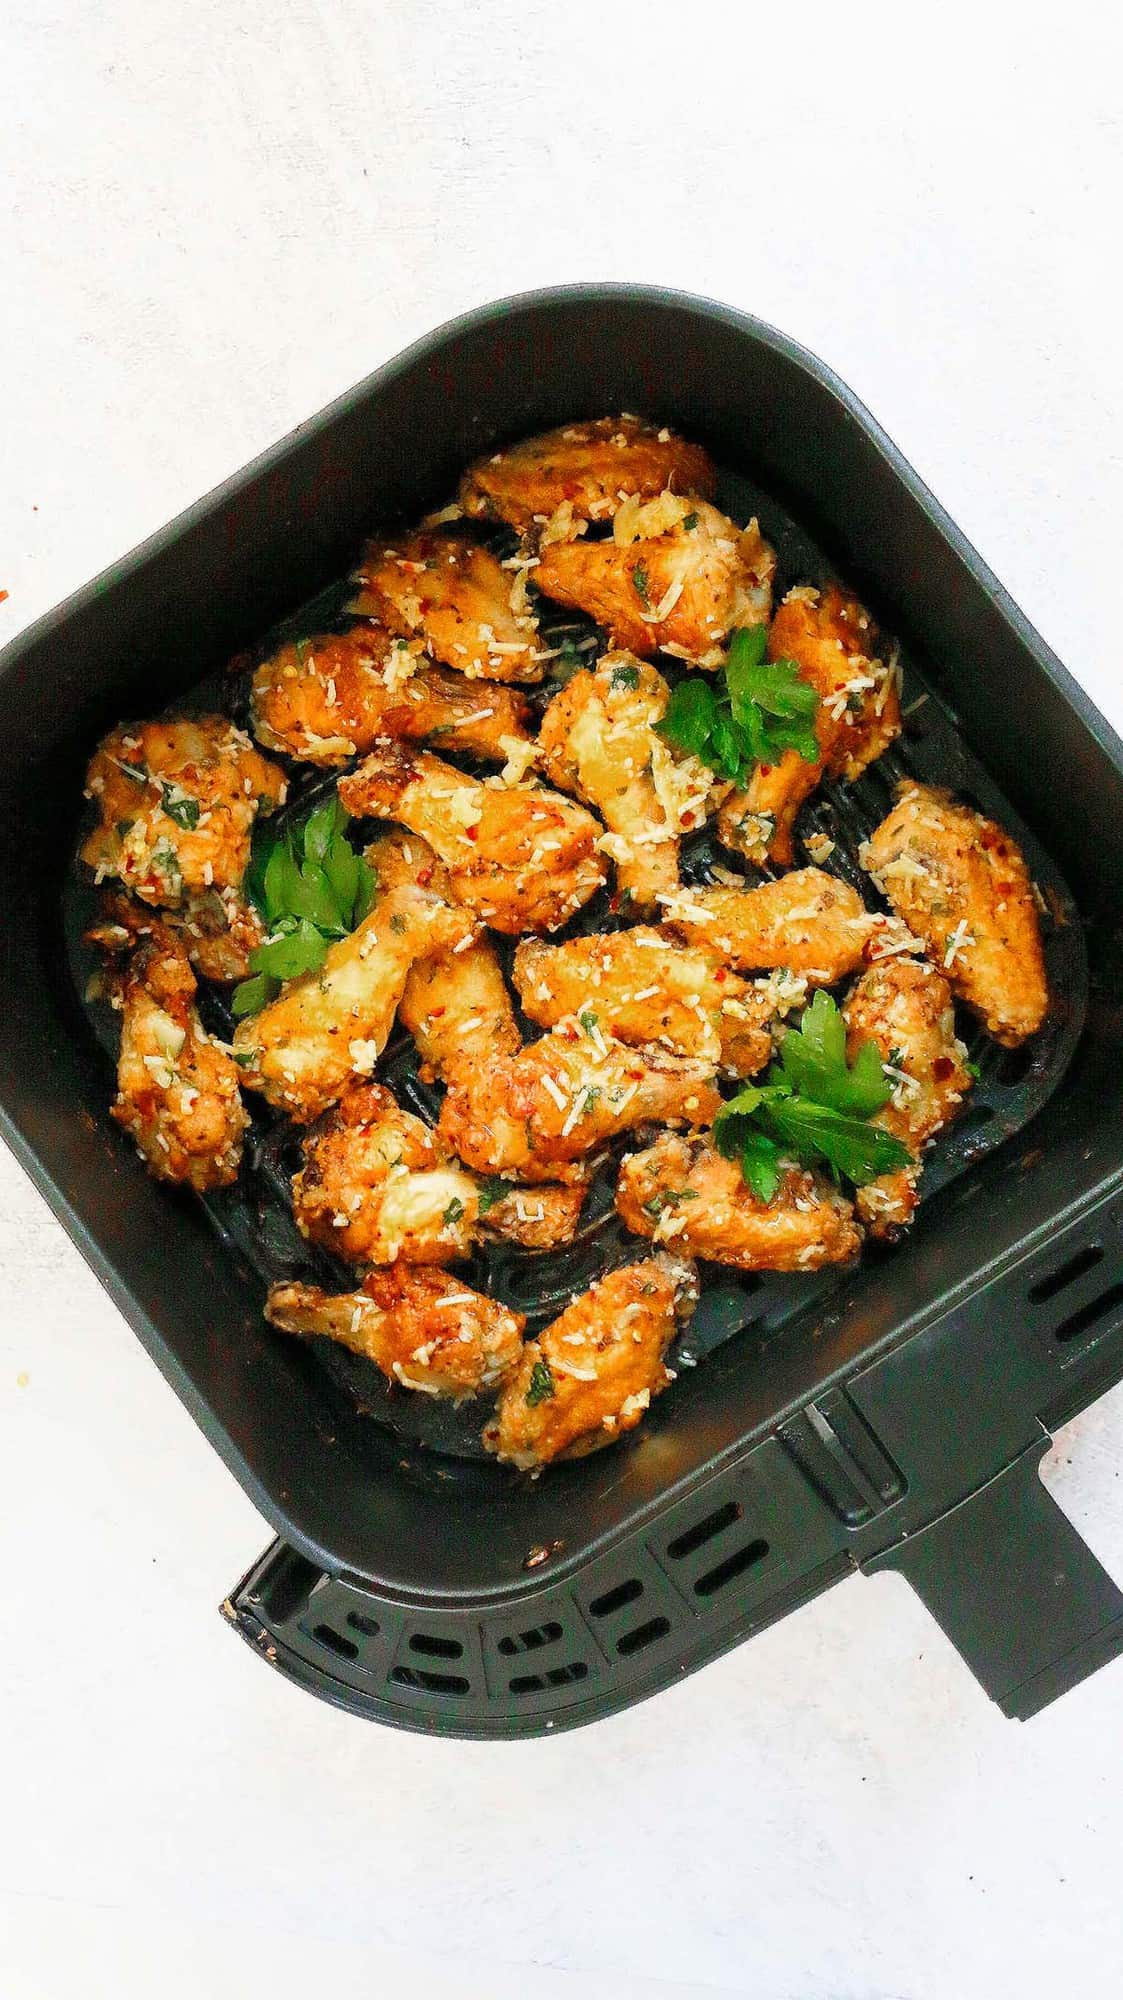 air fryer basket with cooked garlic parmesan wings garnished with fresh parsley